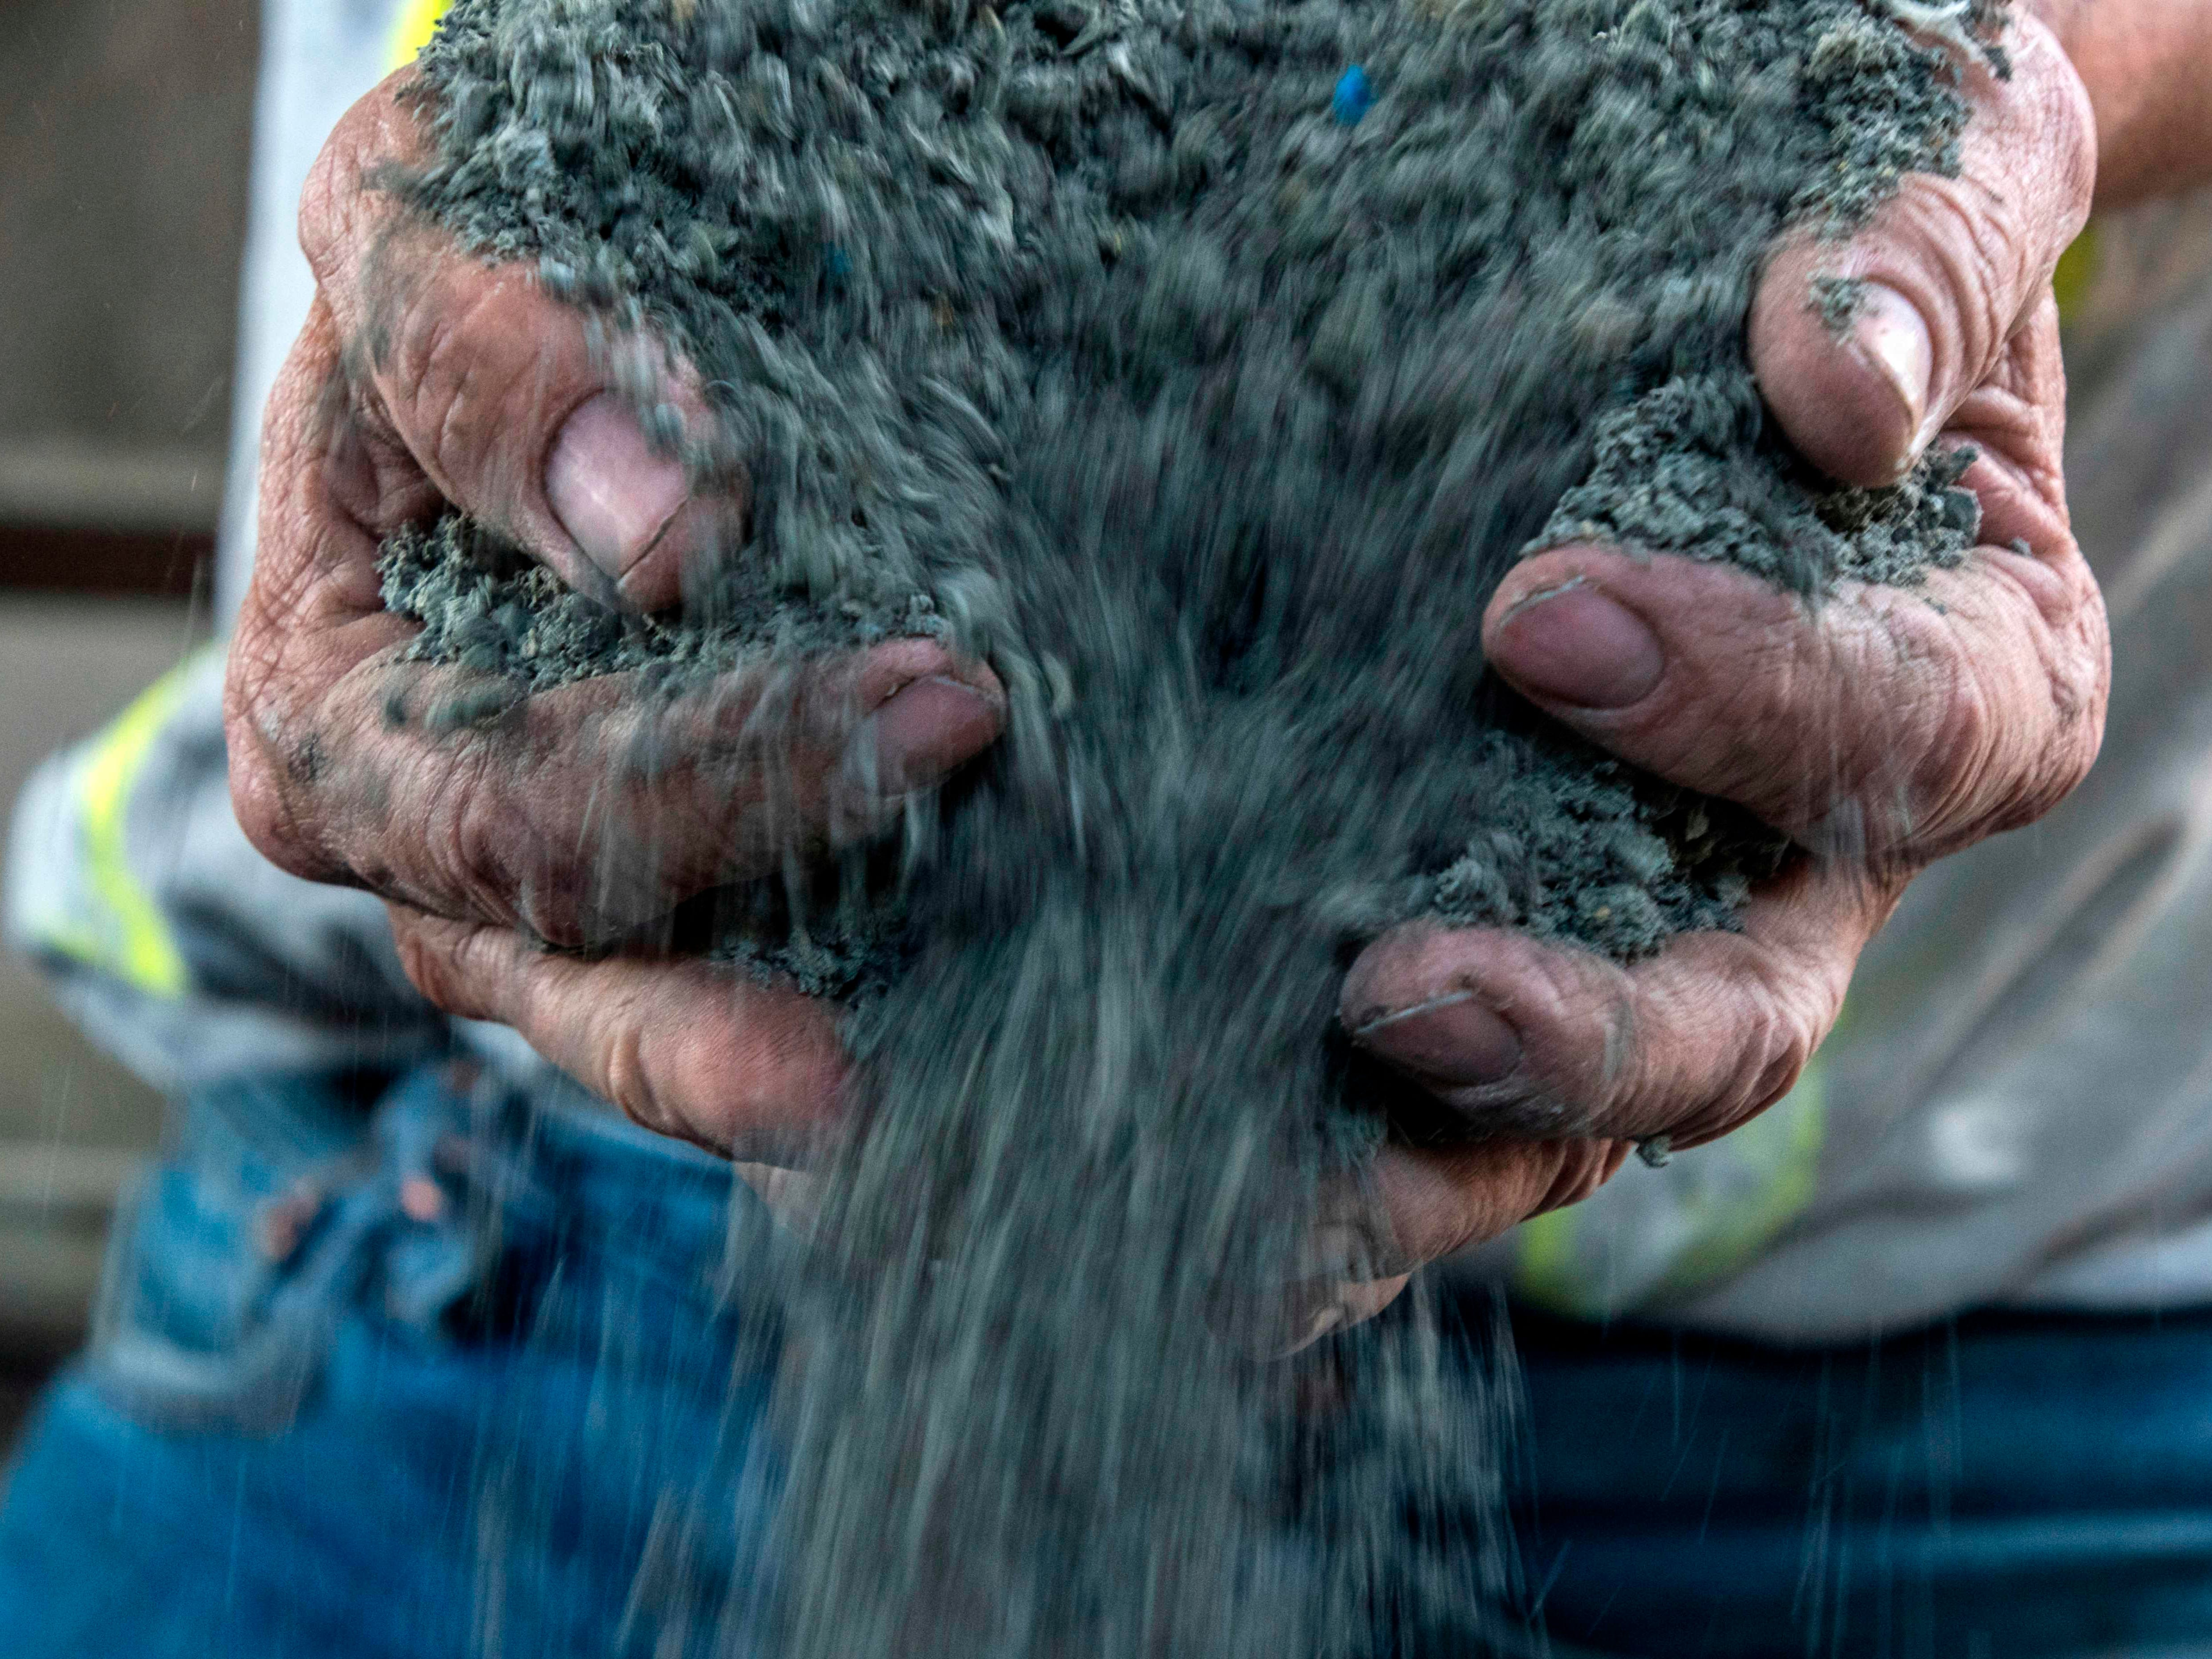 A man manipulates recycled plastic to make cement at an ecoblock factory in San Jose, Costa Rica, on Nov. 28, 2018. Even when plastics are recycled, uses for them can be hard to find.